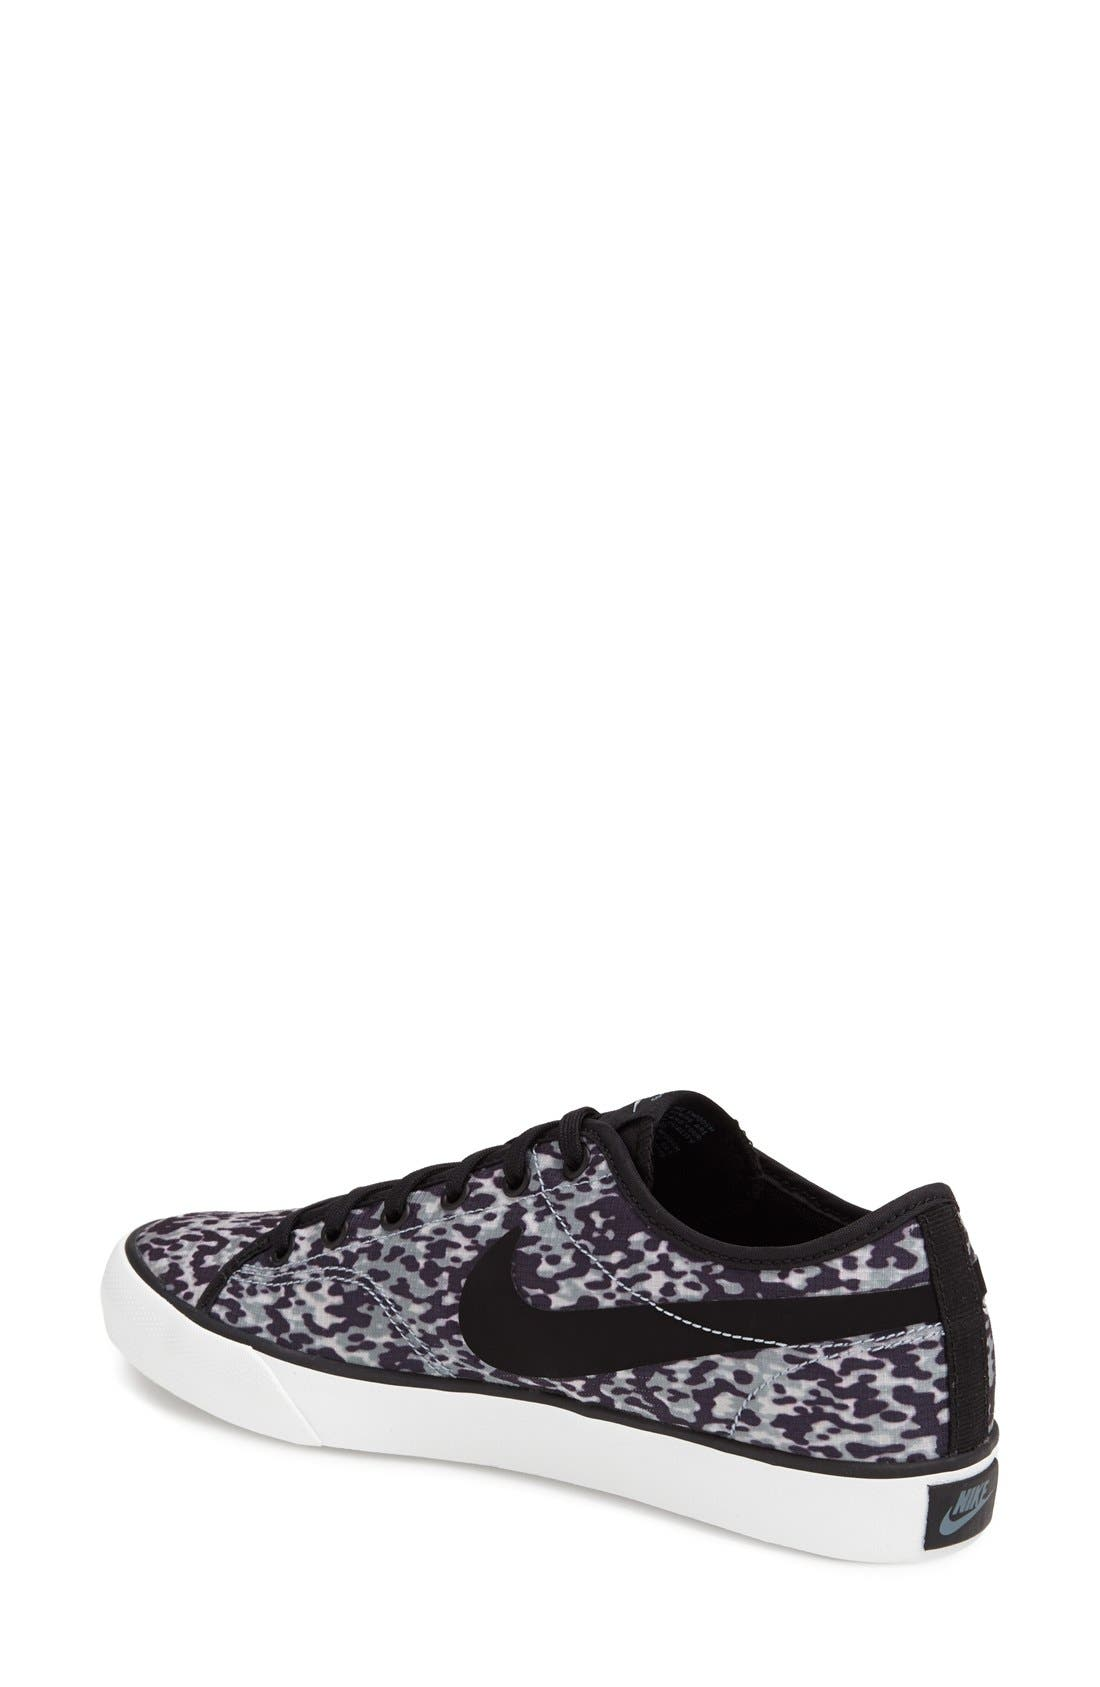 Alternate Image 2  - Nike 'Primo - Court' Printed Canvas Sneaker (Women)